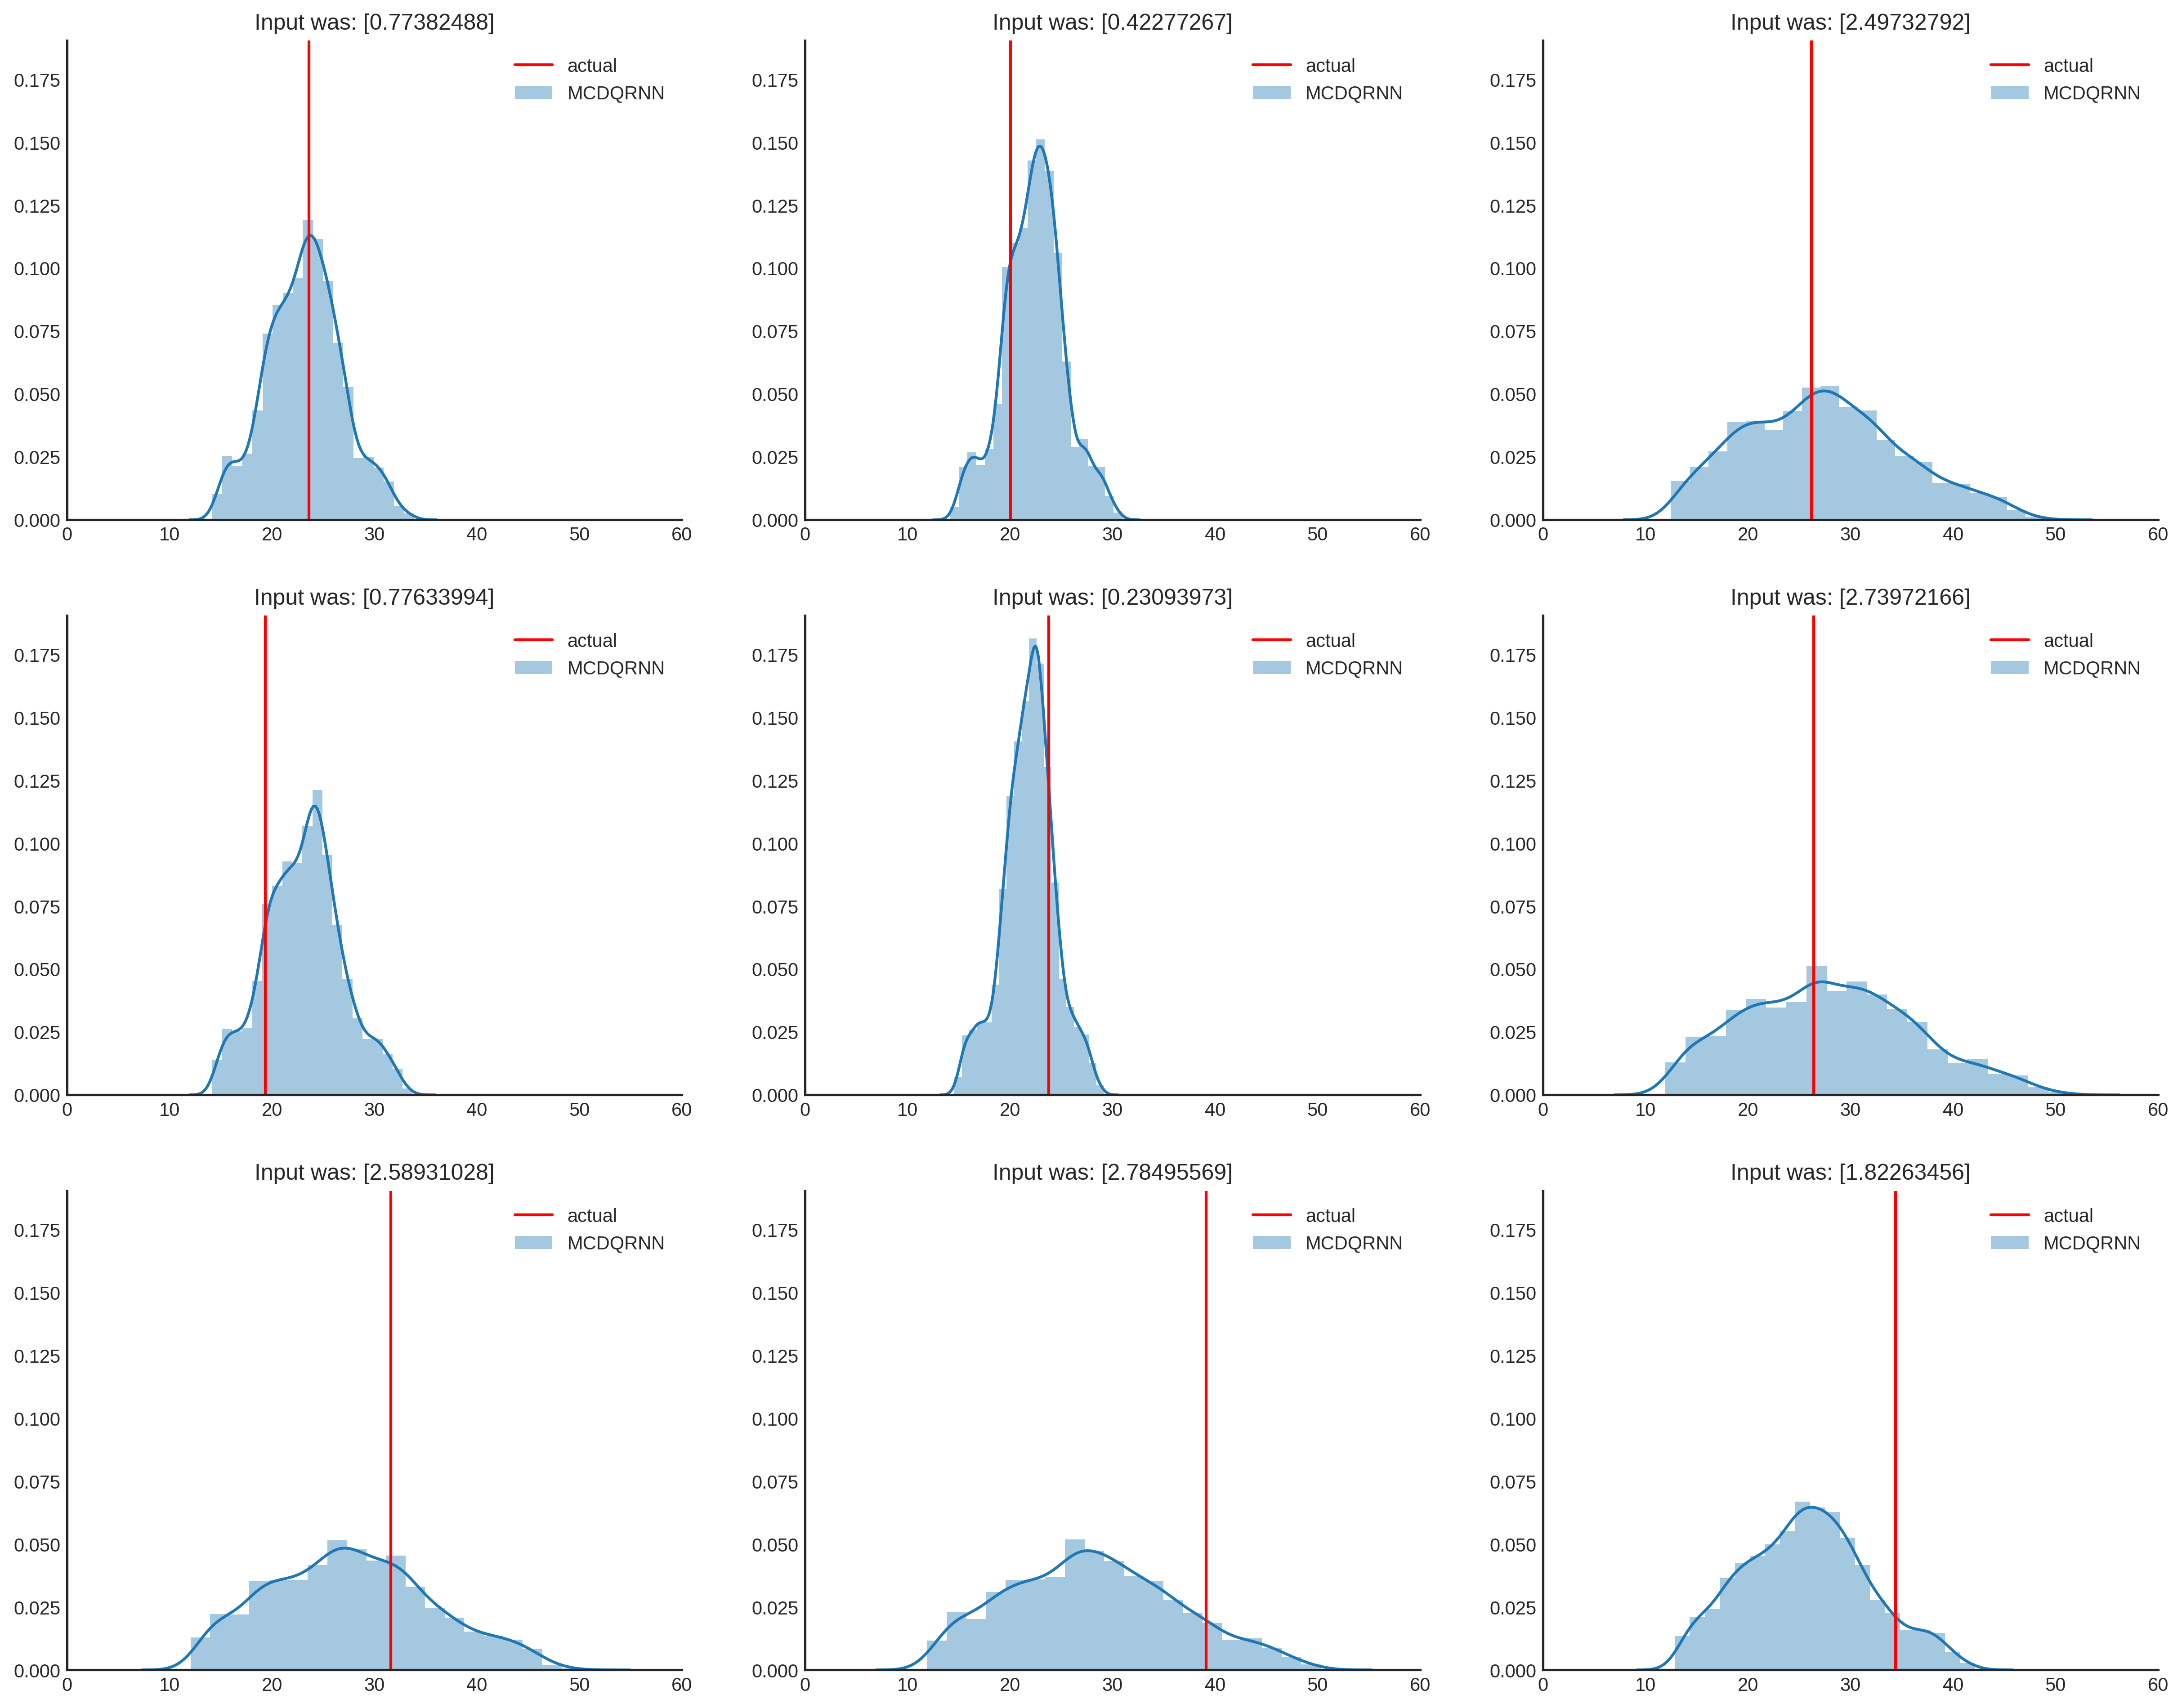 Figure 8: Matrix showing different uncertainty distributions for different inputs of $x$.